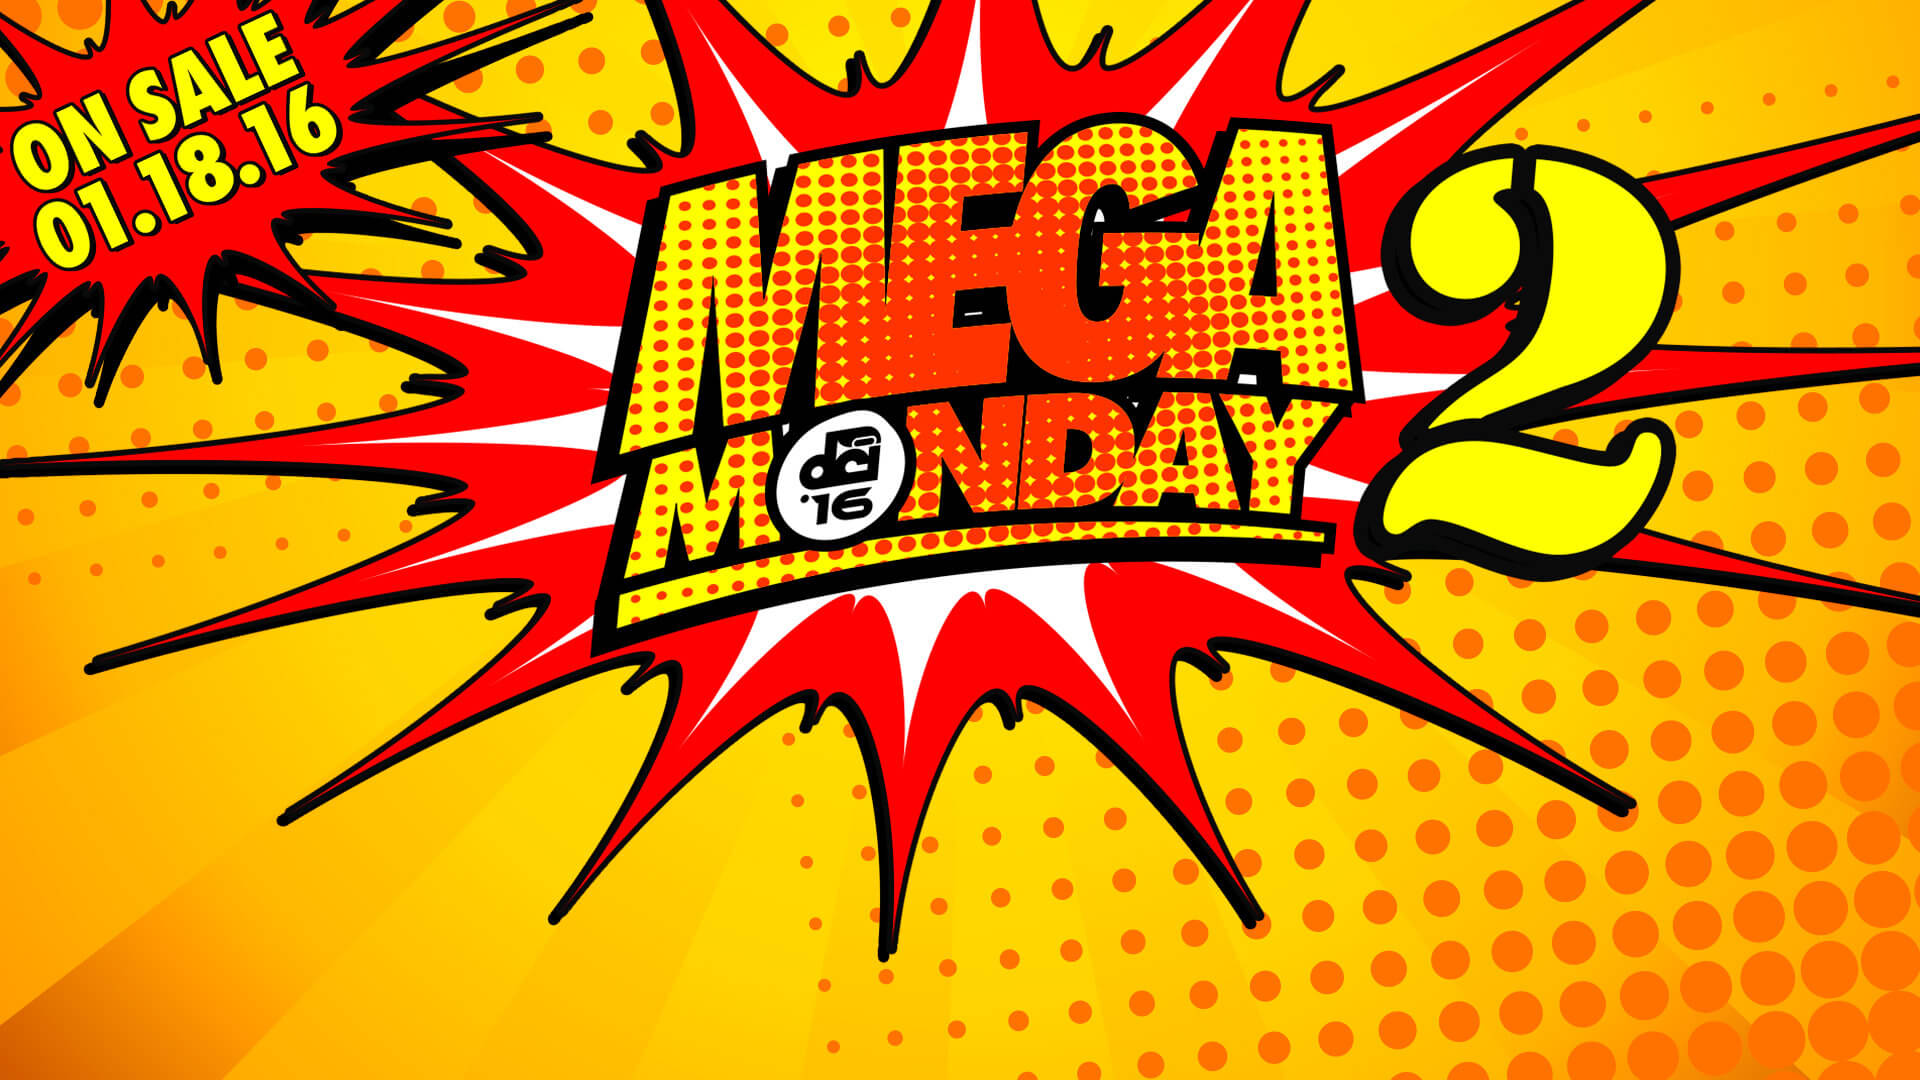 Mega Monday 2: New event tickets now on sale